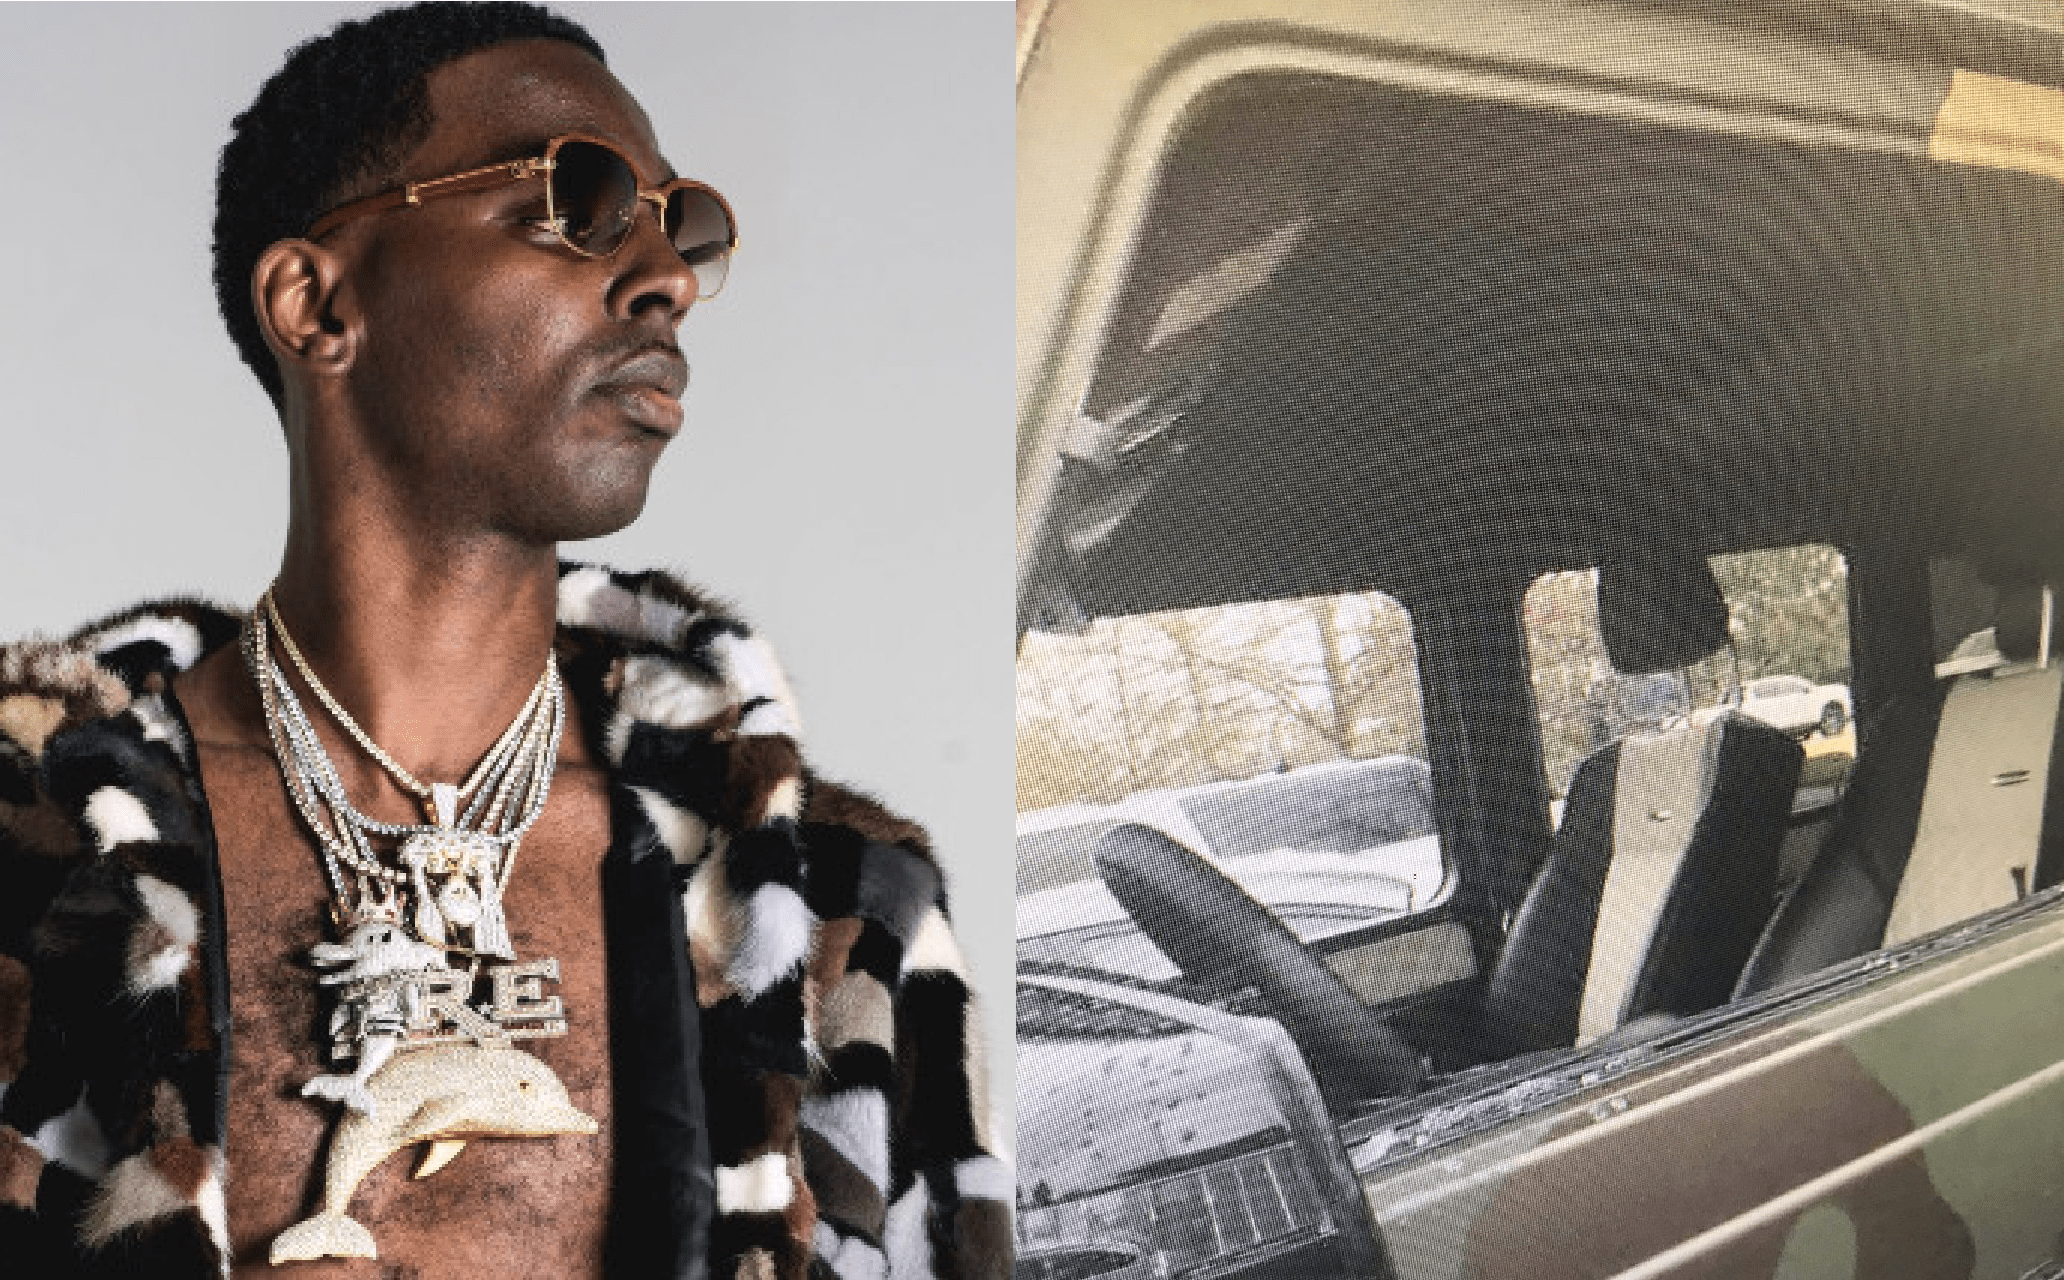 Rapper Young Dolph Mercedes SUV Was Robbed Of 500K